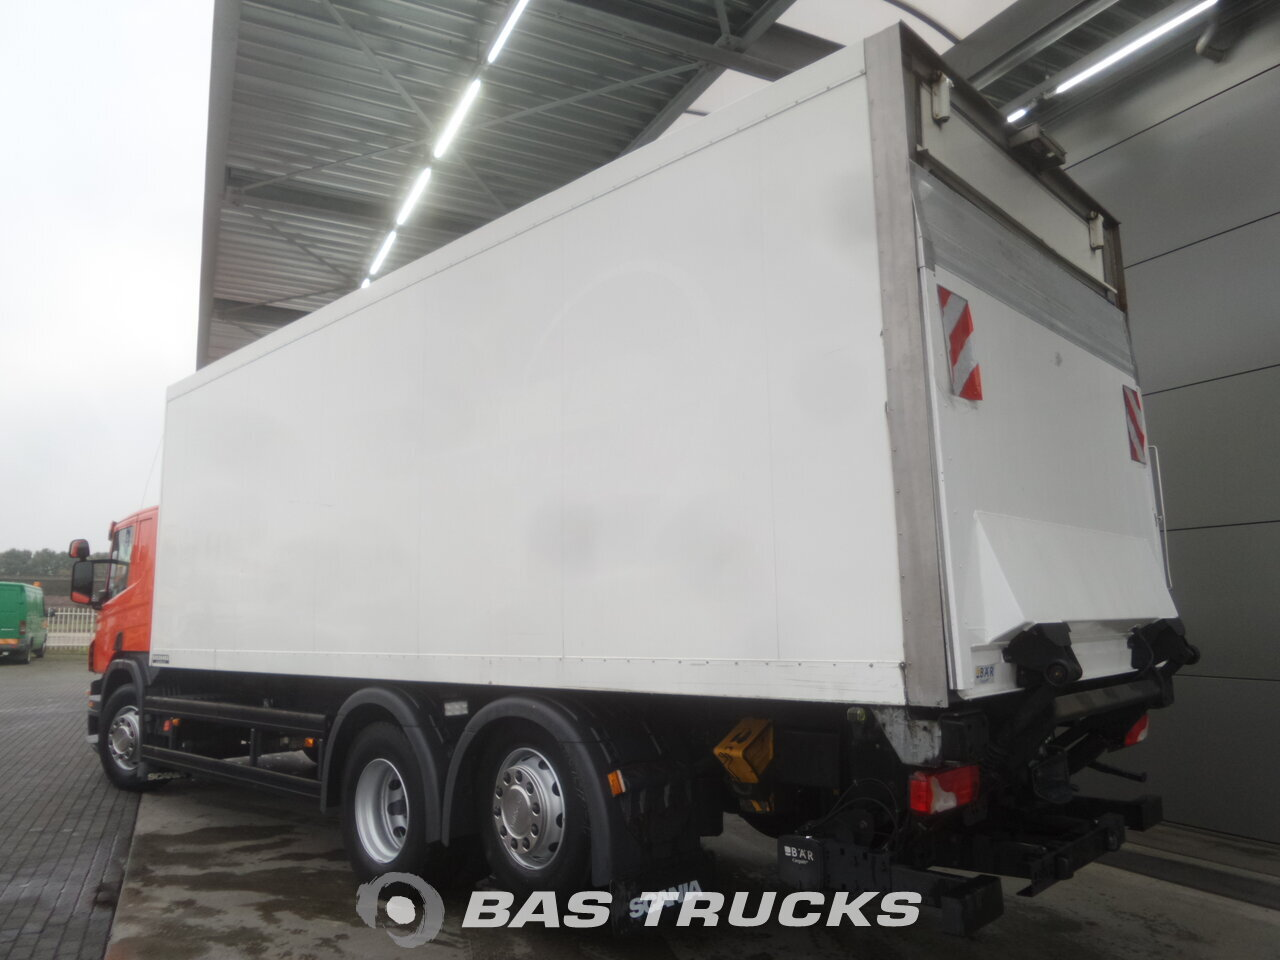 For sale at BAS Trucks: Scania P400 6X2 05/2010